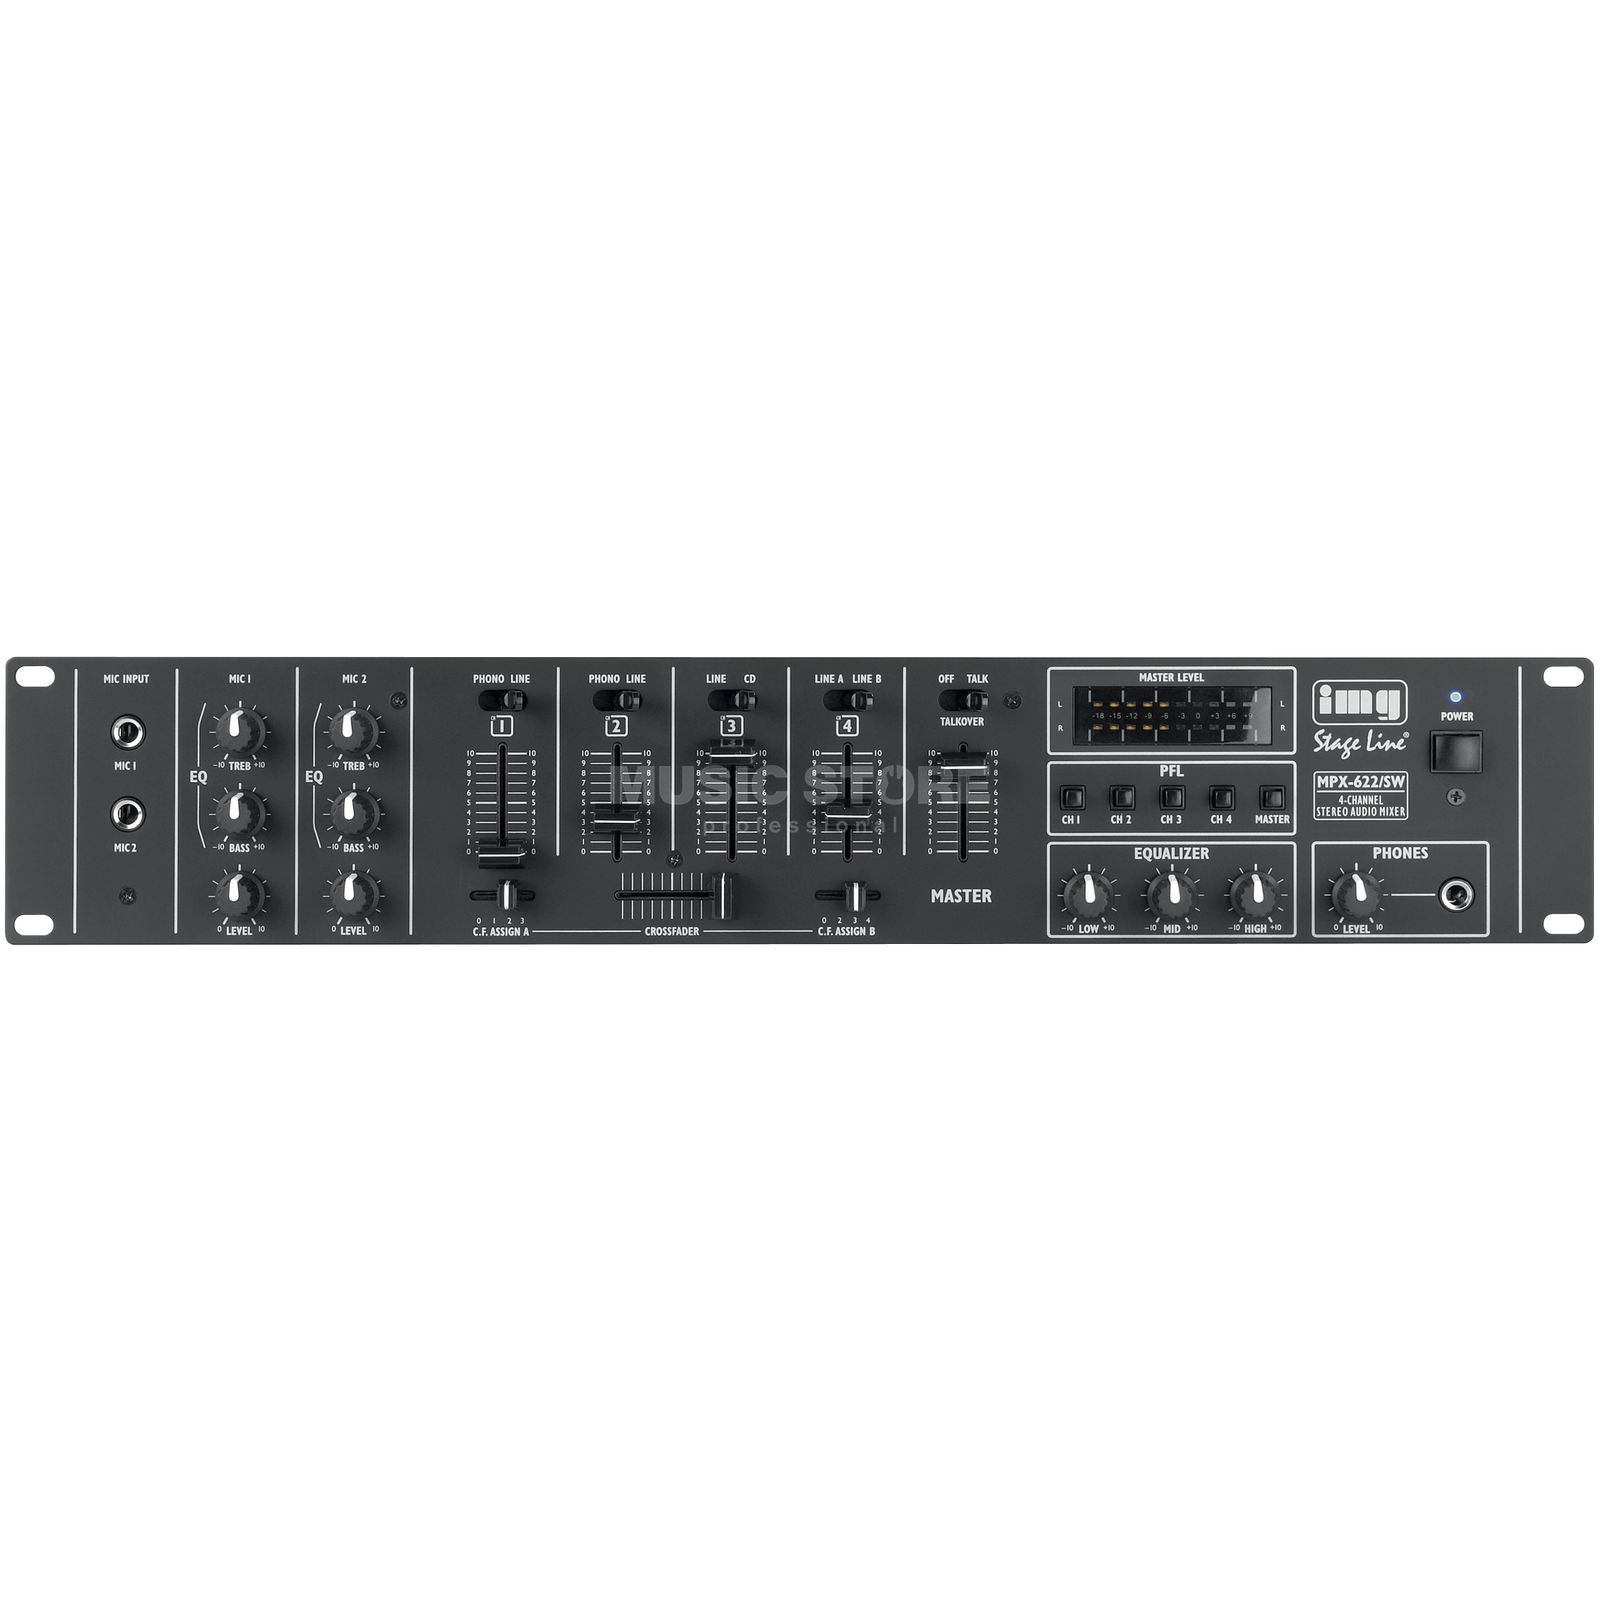 IMG STAGELINE MPX-622 Stereo-DJ Mixer Produktbillede